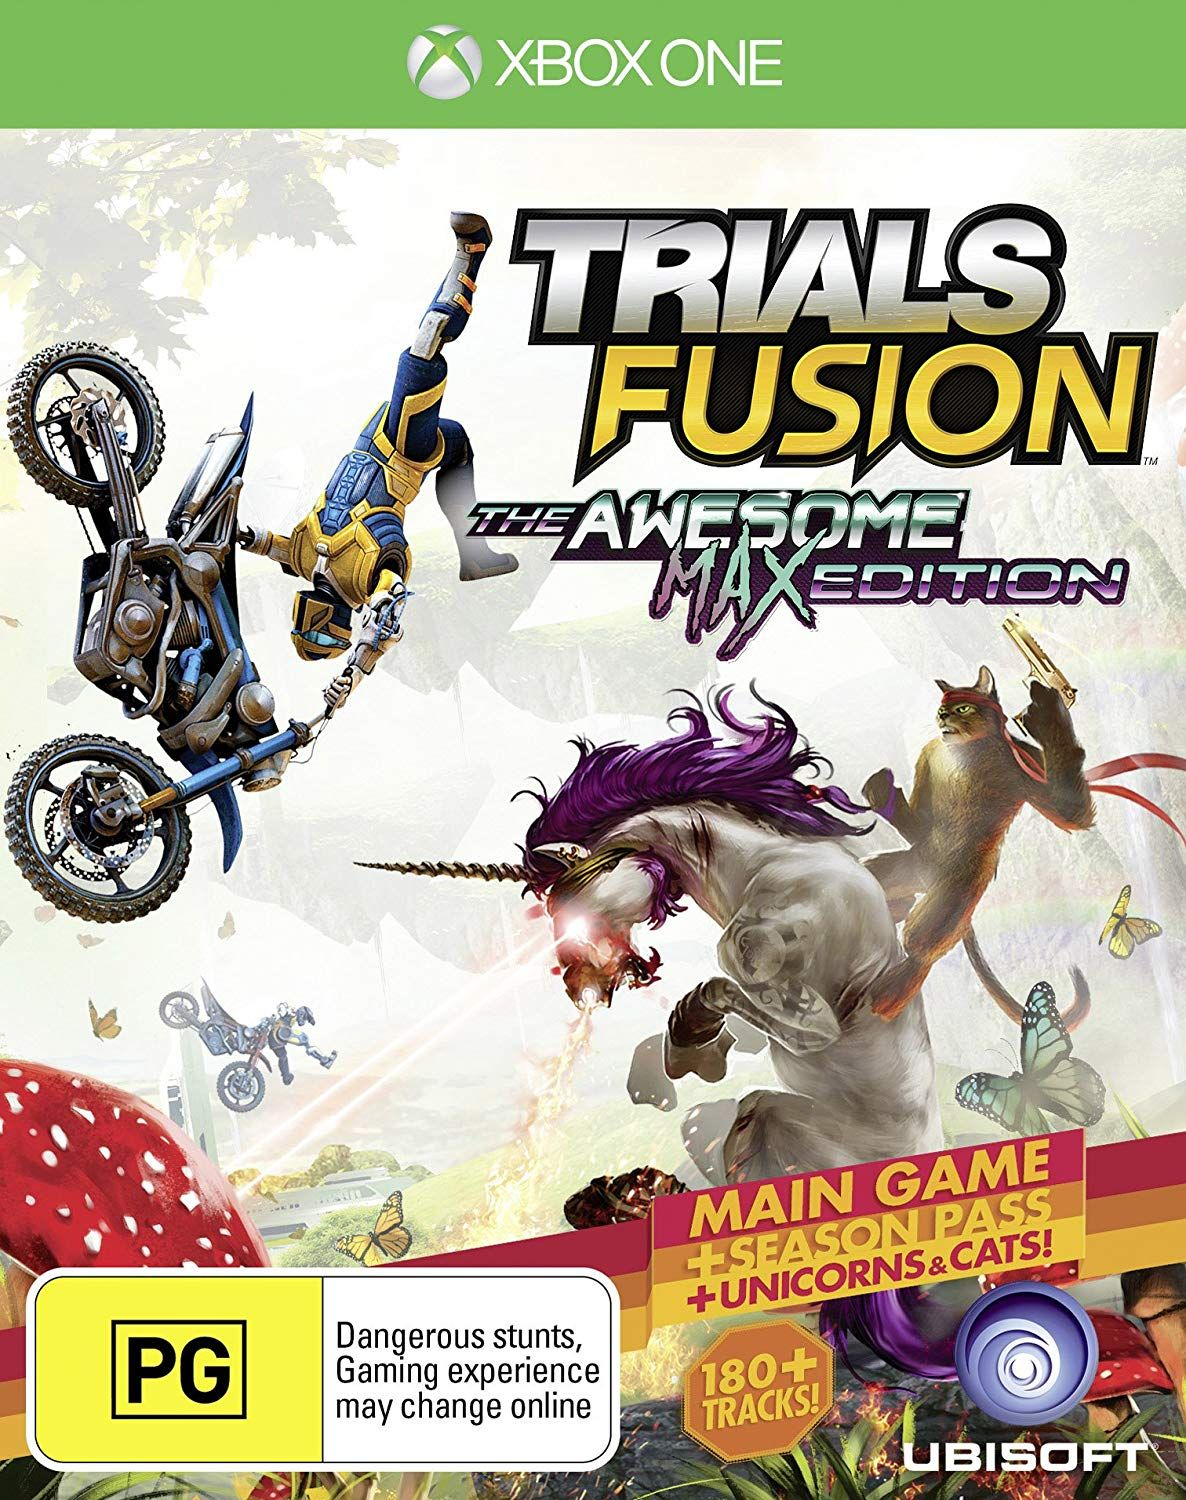 TRIALS FUSION THE AWESOME MAX EDITION ANZ Xbox one games